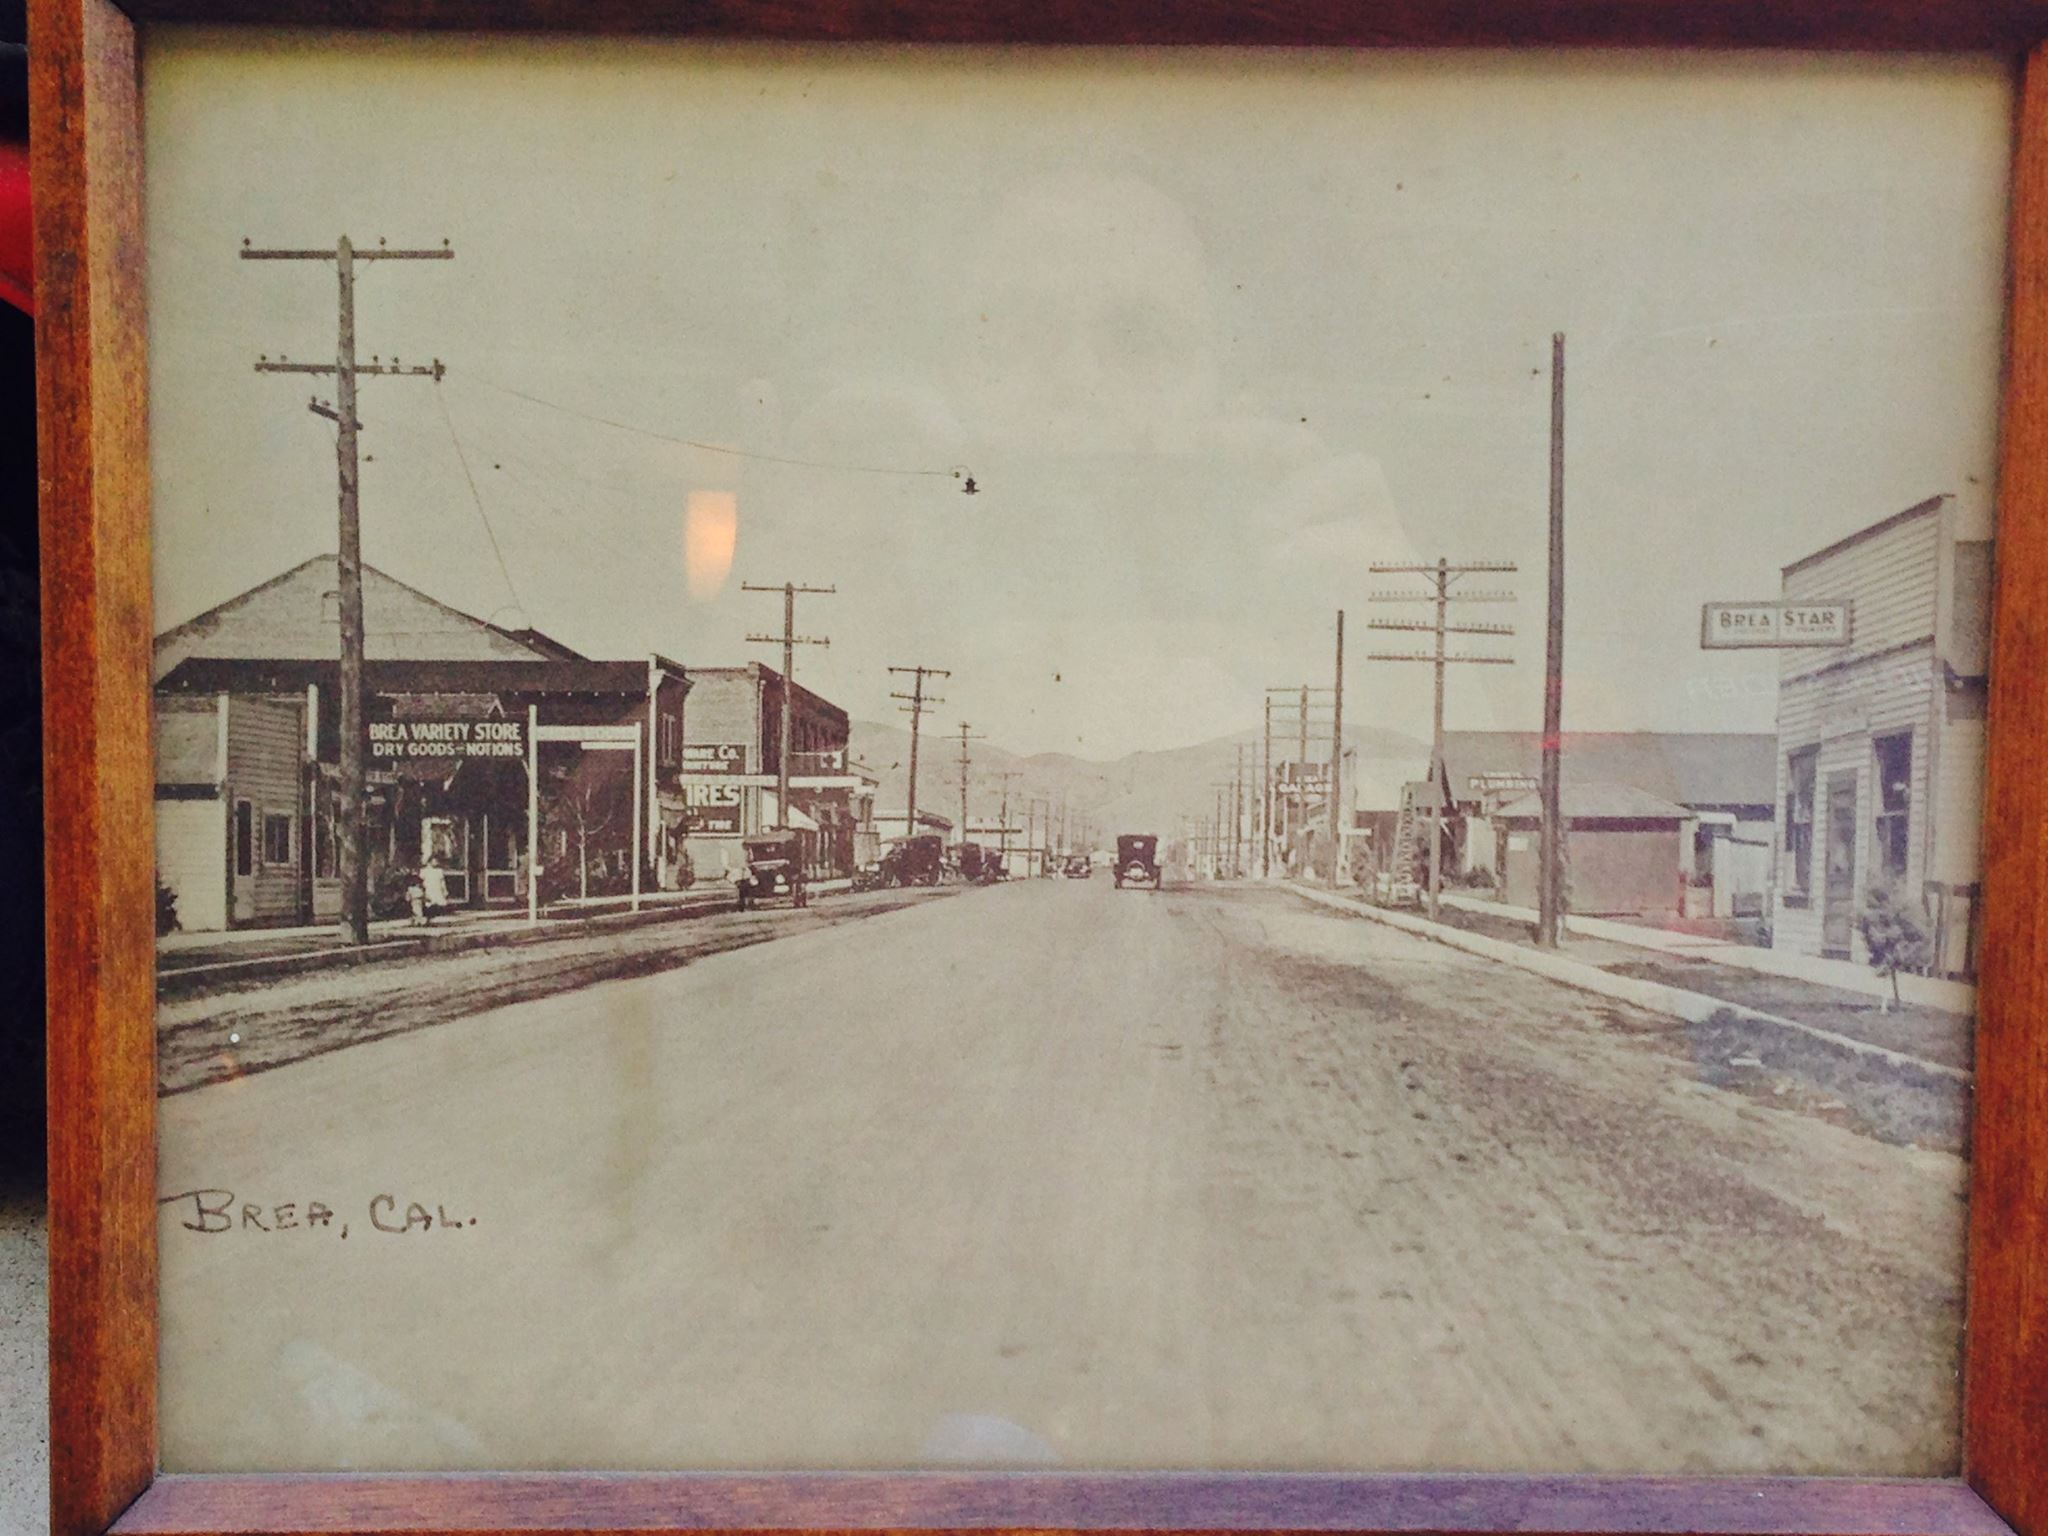 Notice the Brea Star newspaper building on the right. (Photo Courtesy of the Brea Museum & Historical Society)